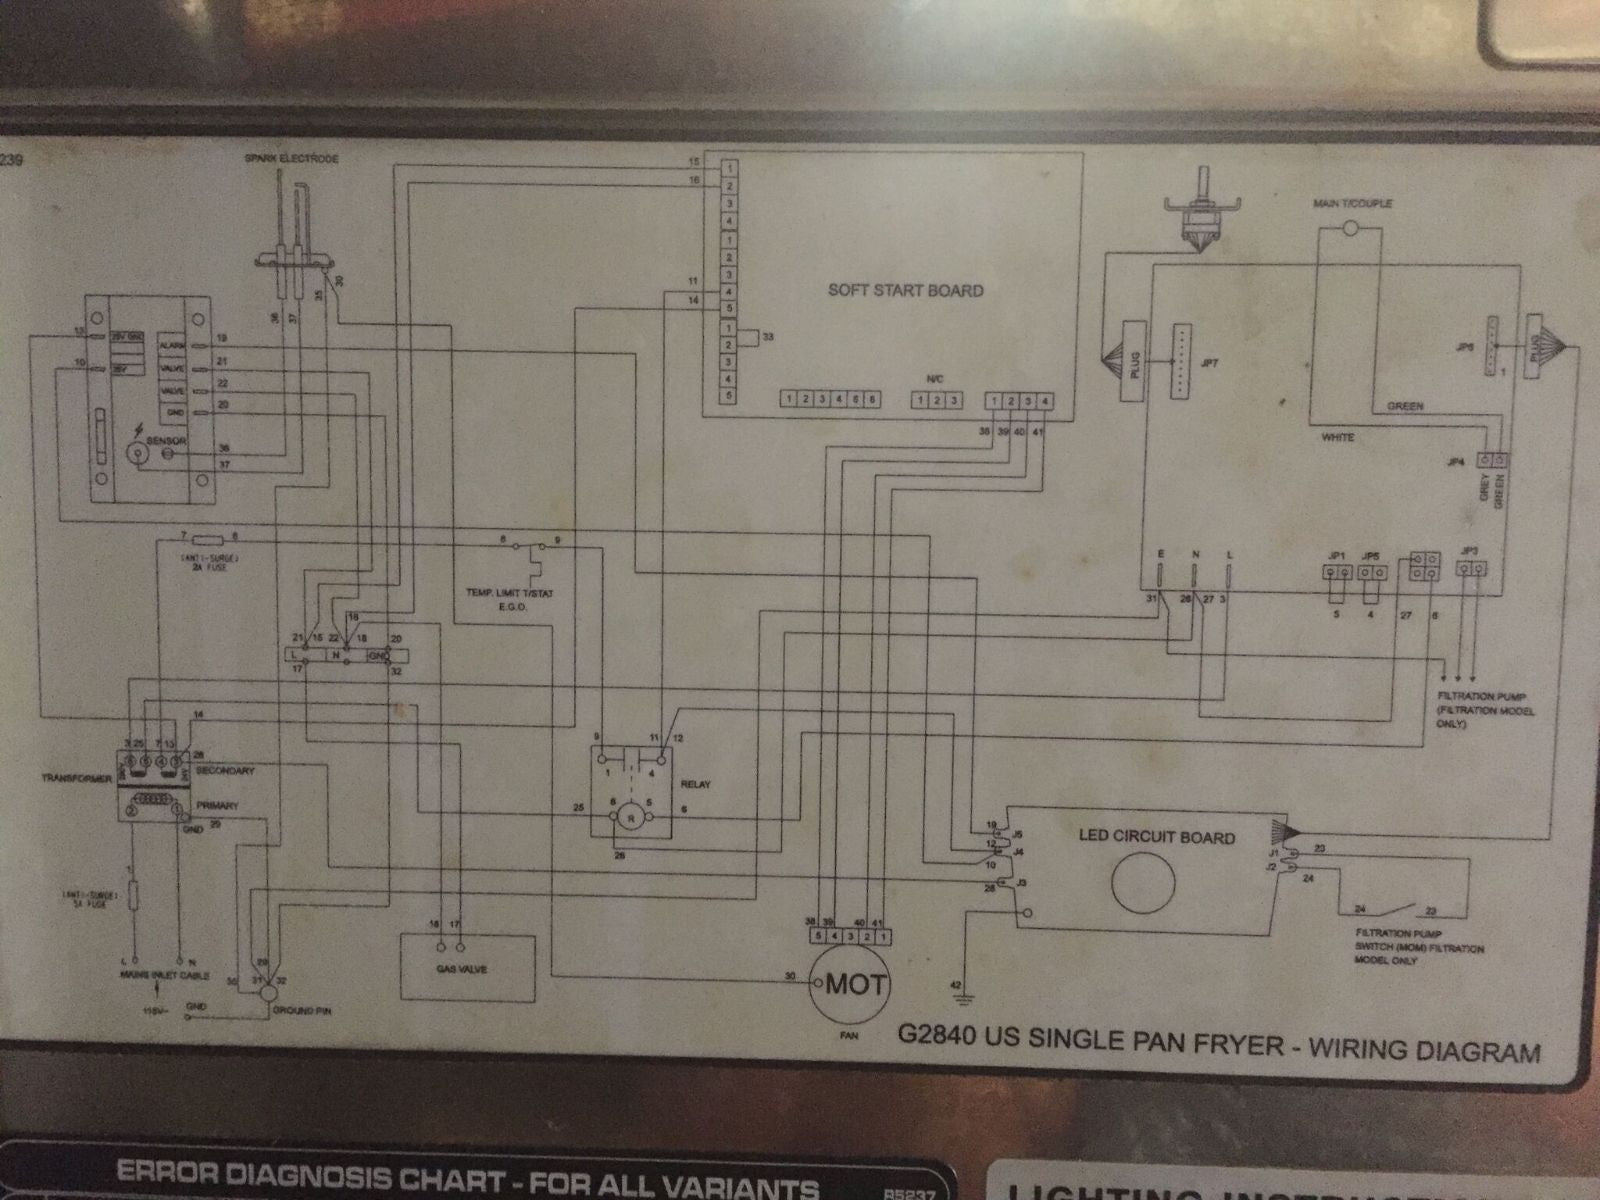 Infiniti G2840 Gas Double Bank Fryer Atlantic Restaurant Bakery Alto Shaam Wiring Diagram